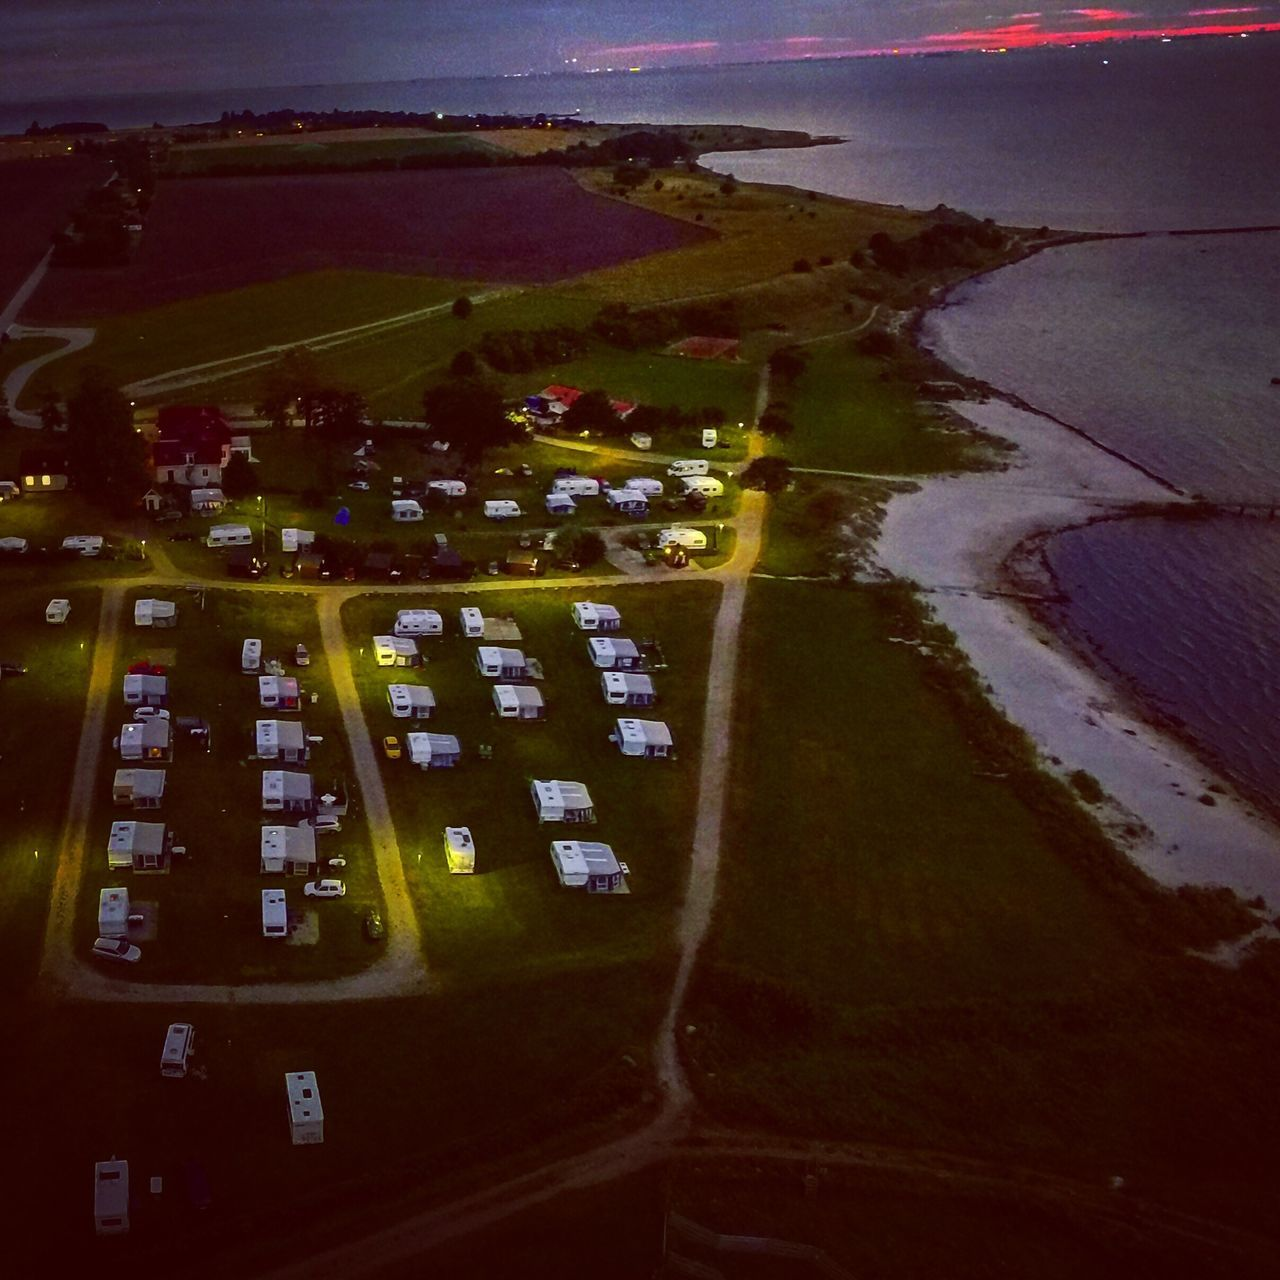 No People Transportation Aerial View Water Outdoors Air Vehicle Day Close-up Camp Campsite Campinglife öresund Sweden Northsea Drone  Dronephotography Aerial Shot Aerial Photography